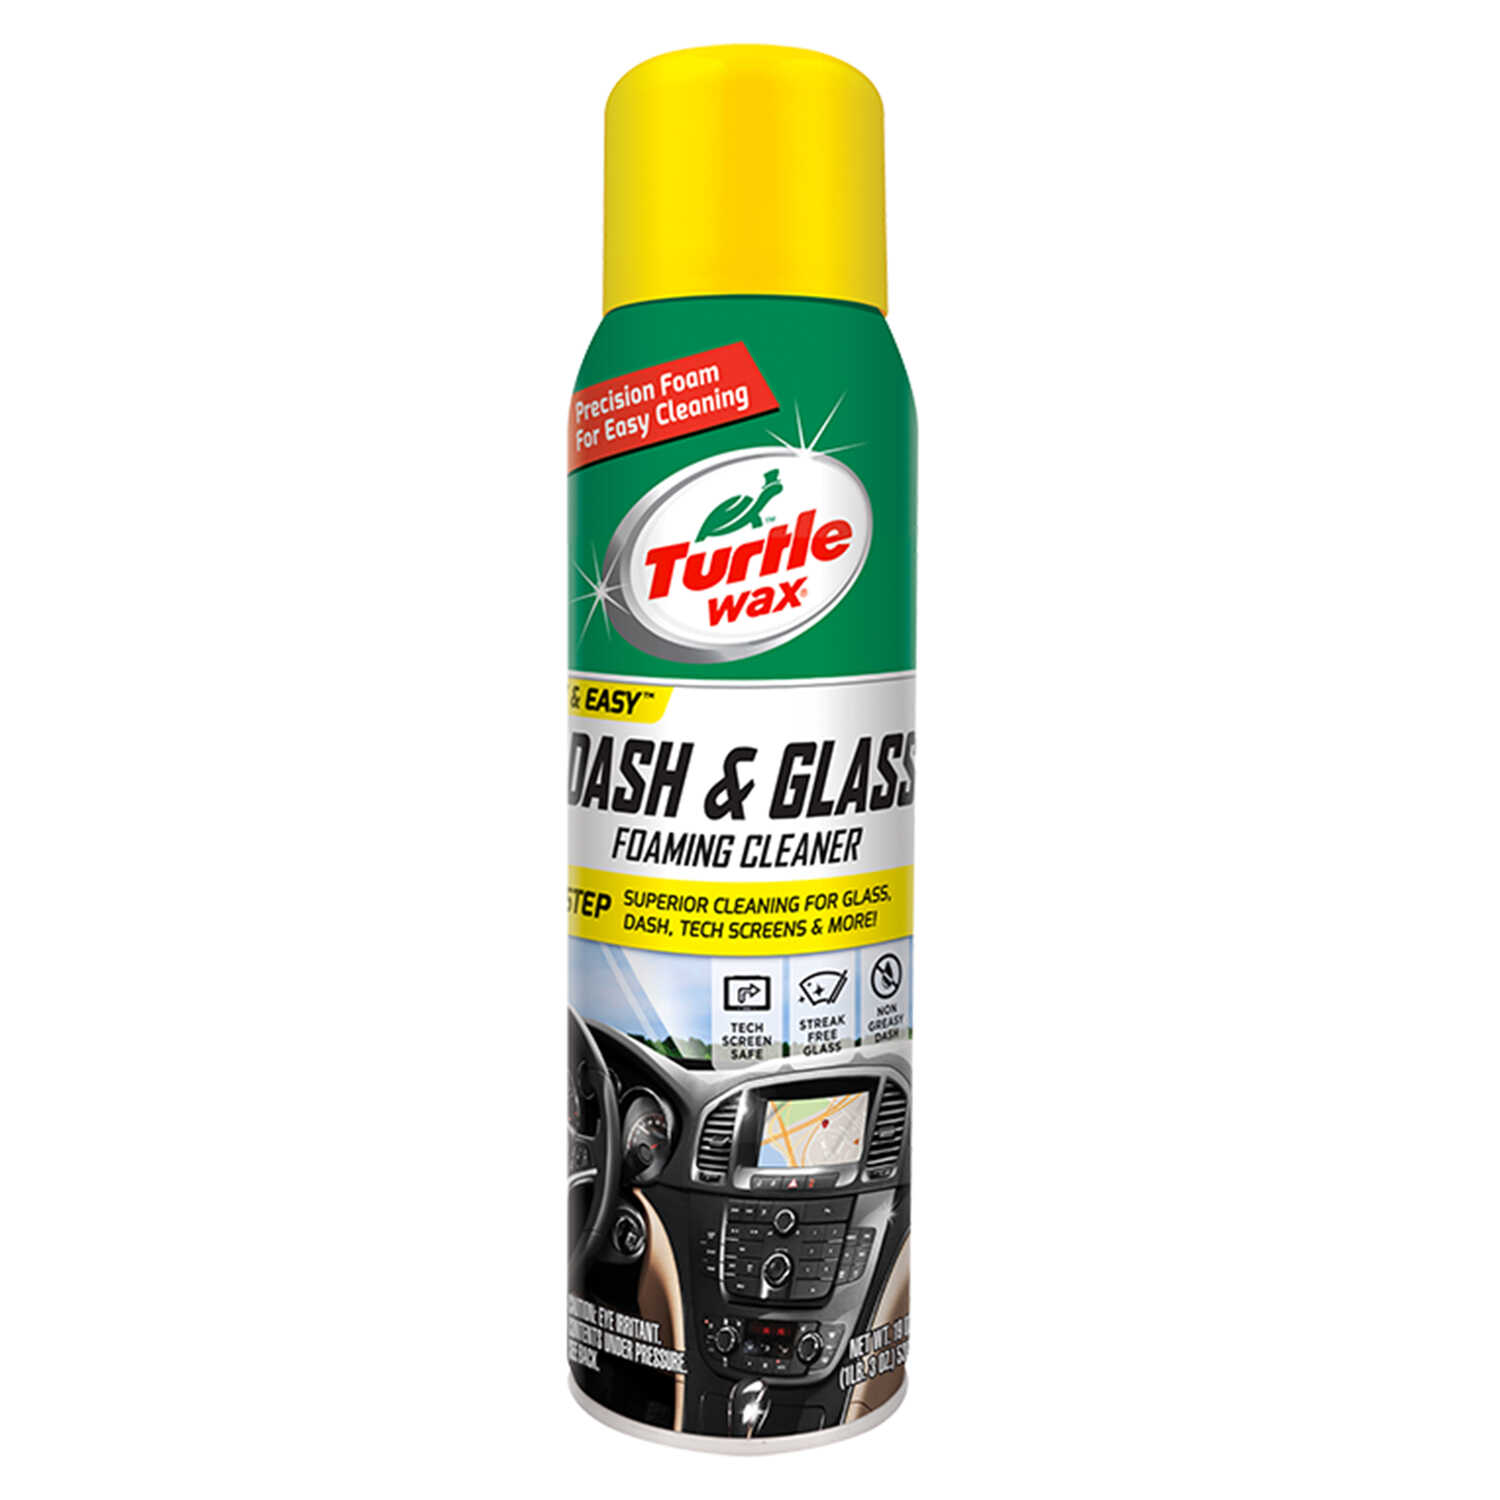 Turtle Wax  Dash & Glass  Glass/Metal/Plastic  Cleaner/Conditioner  19 oz. Can  1 pk